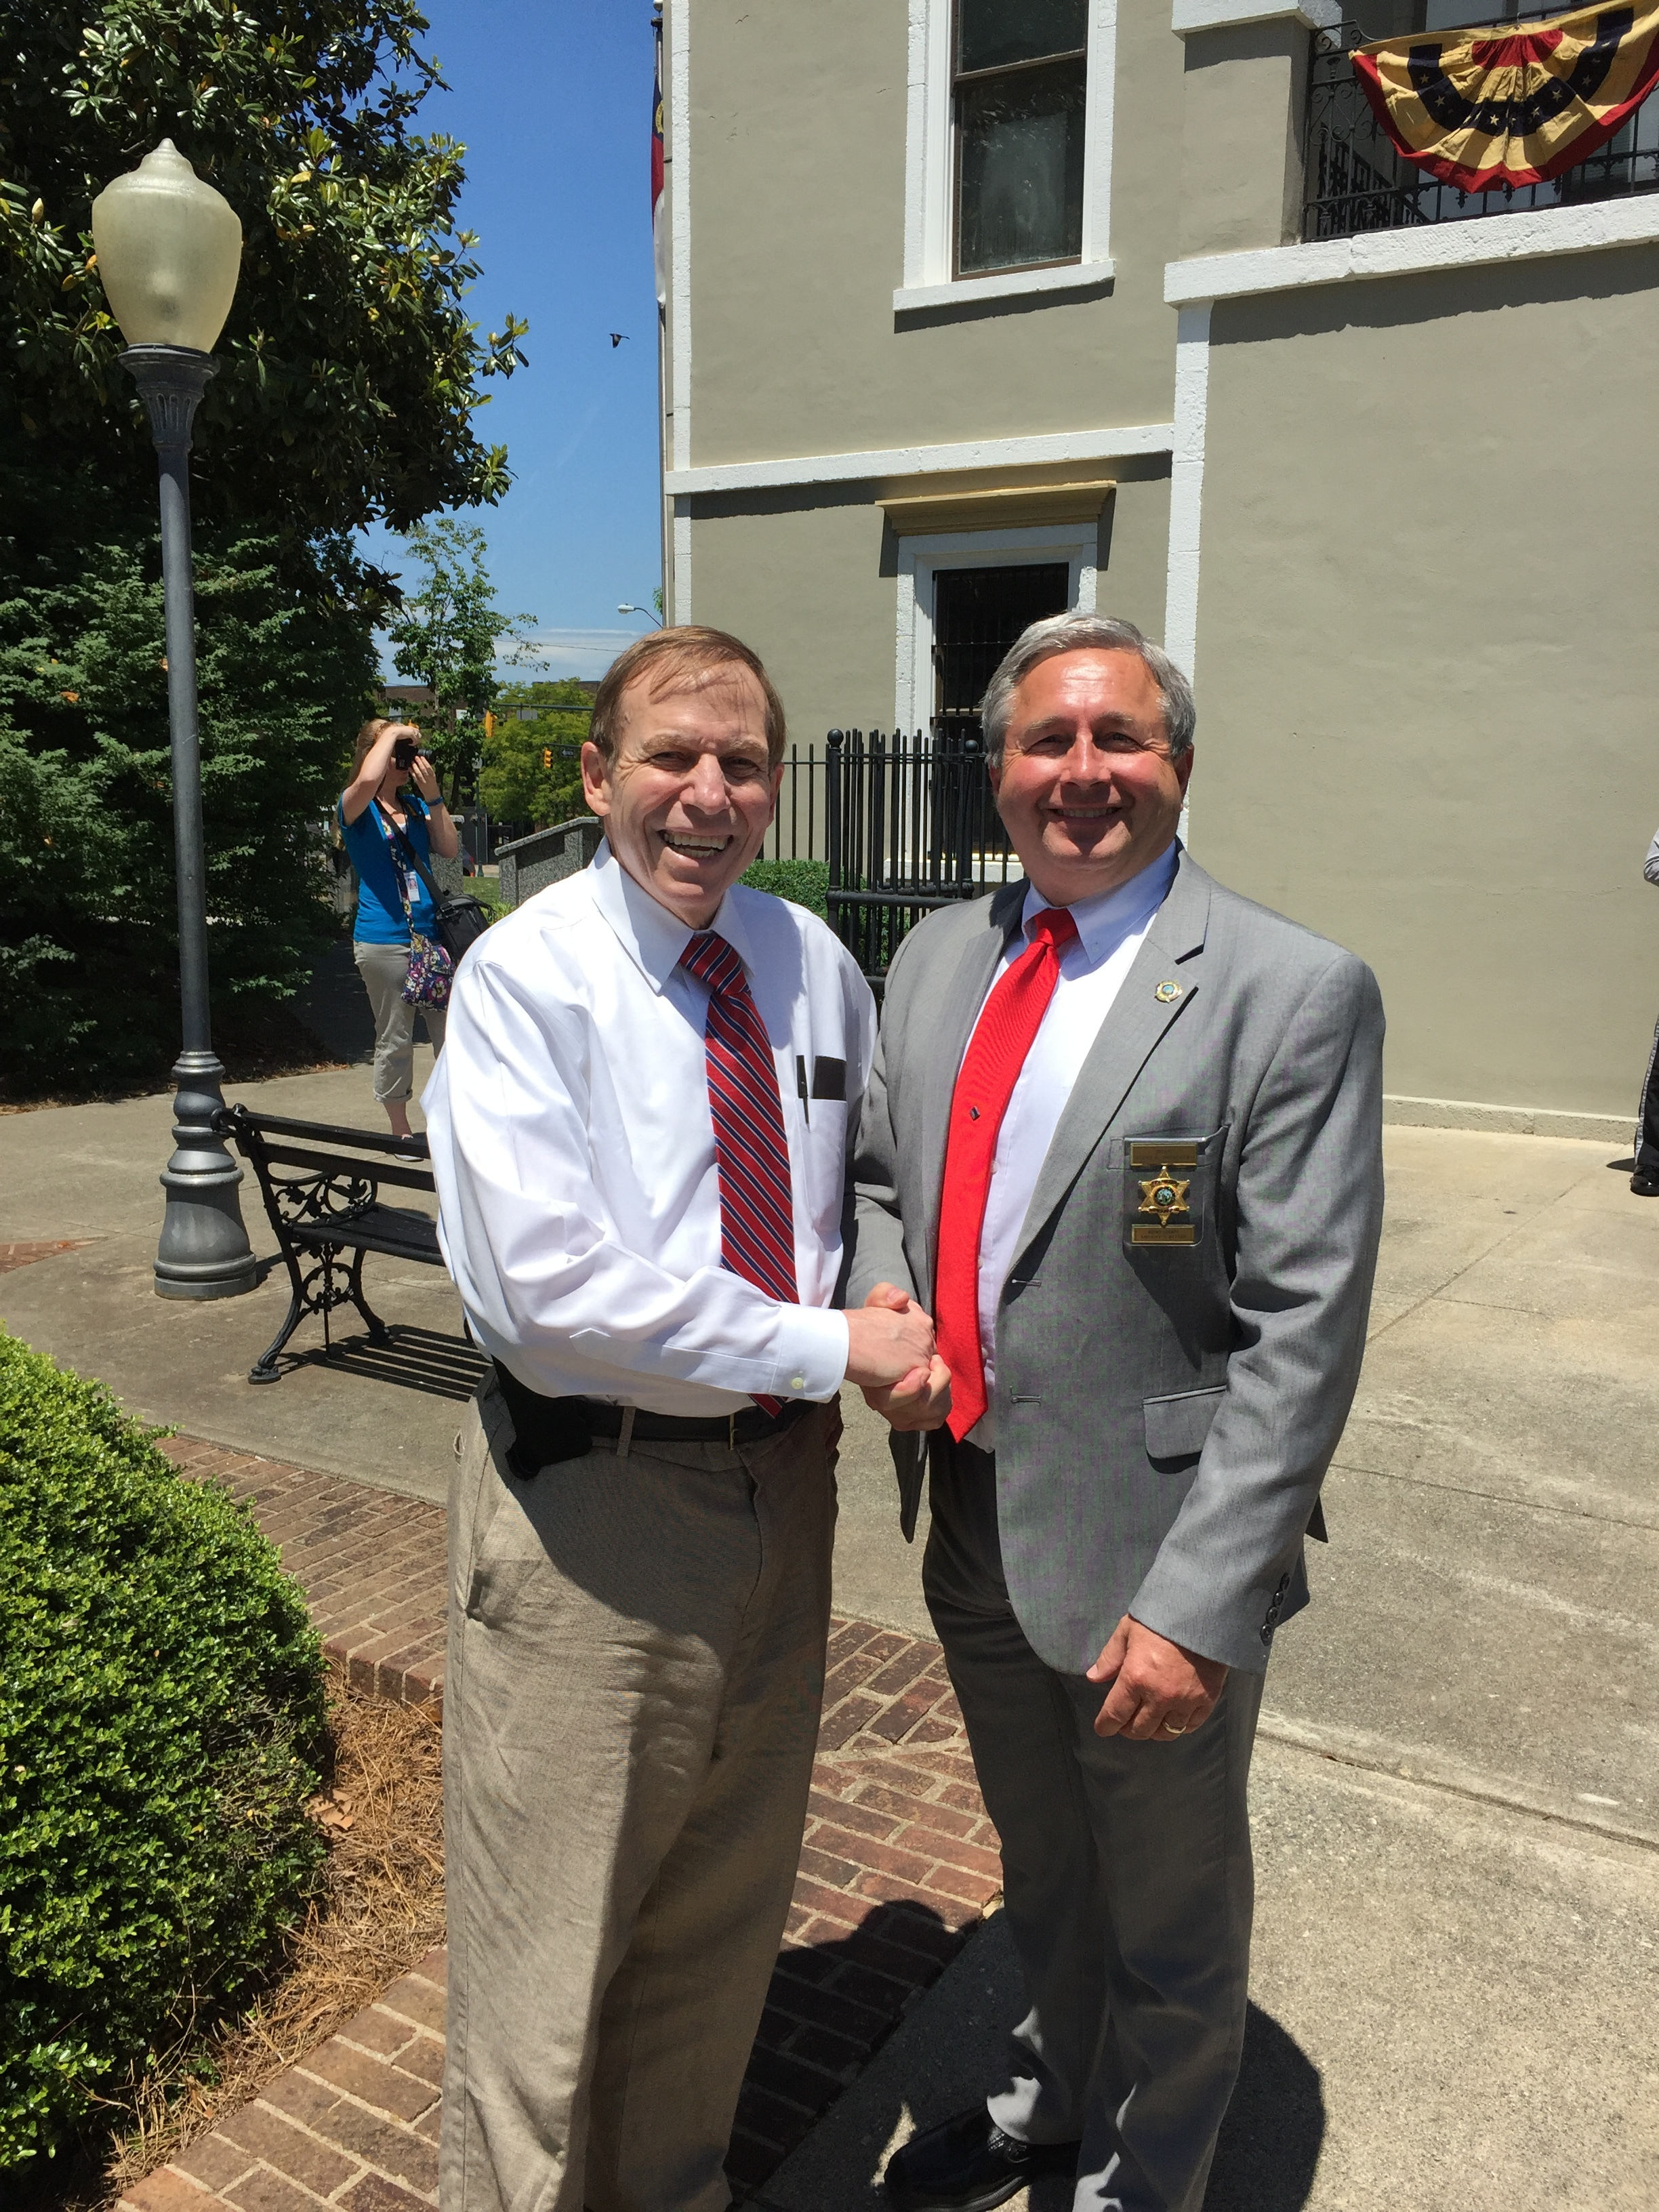 With Sheriff Steve Whisenant, Burke County.